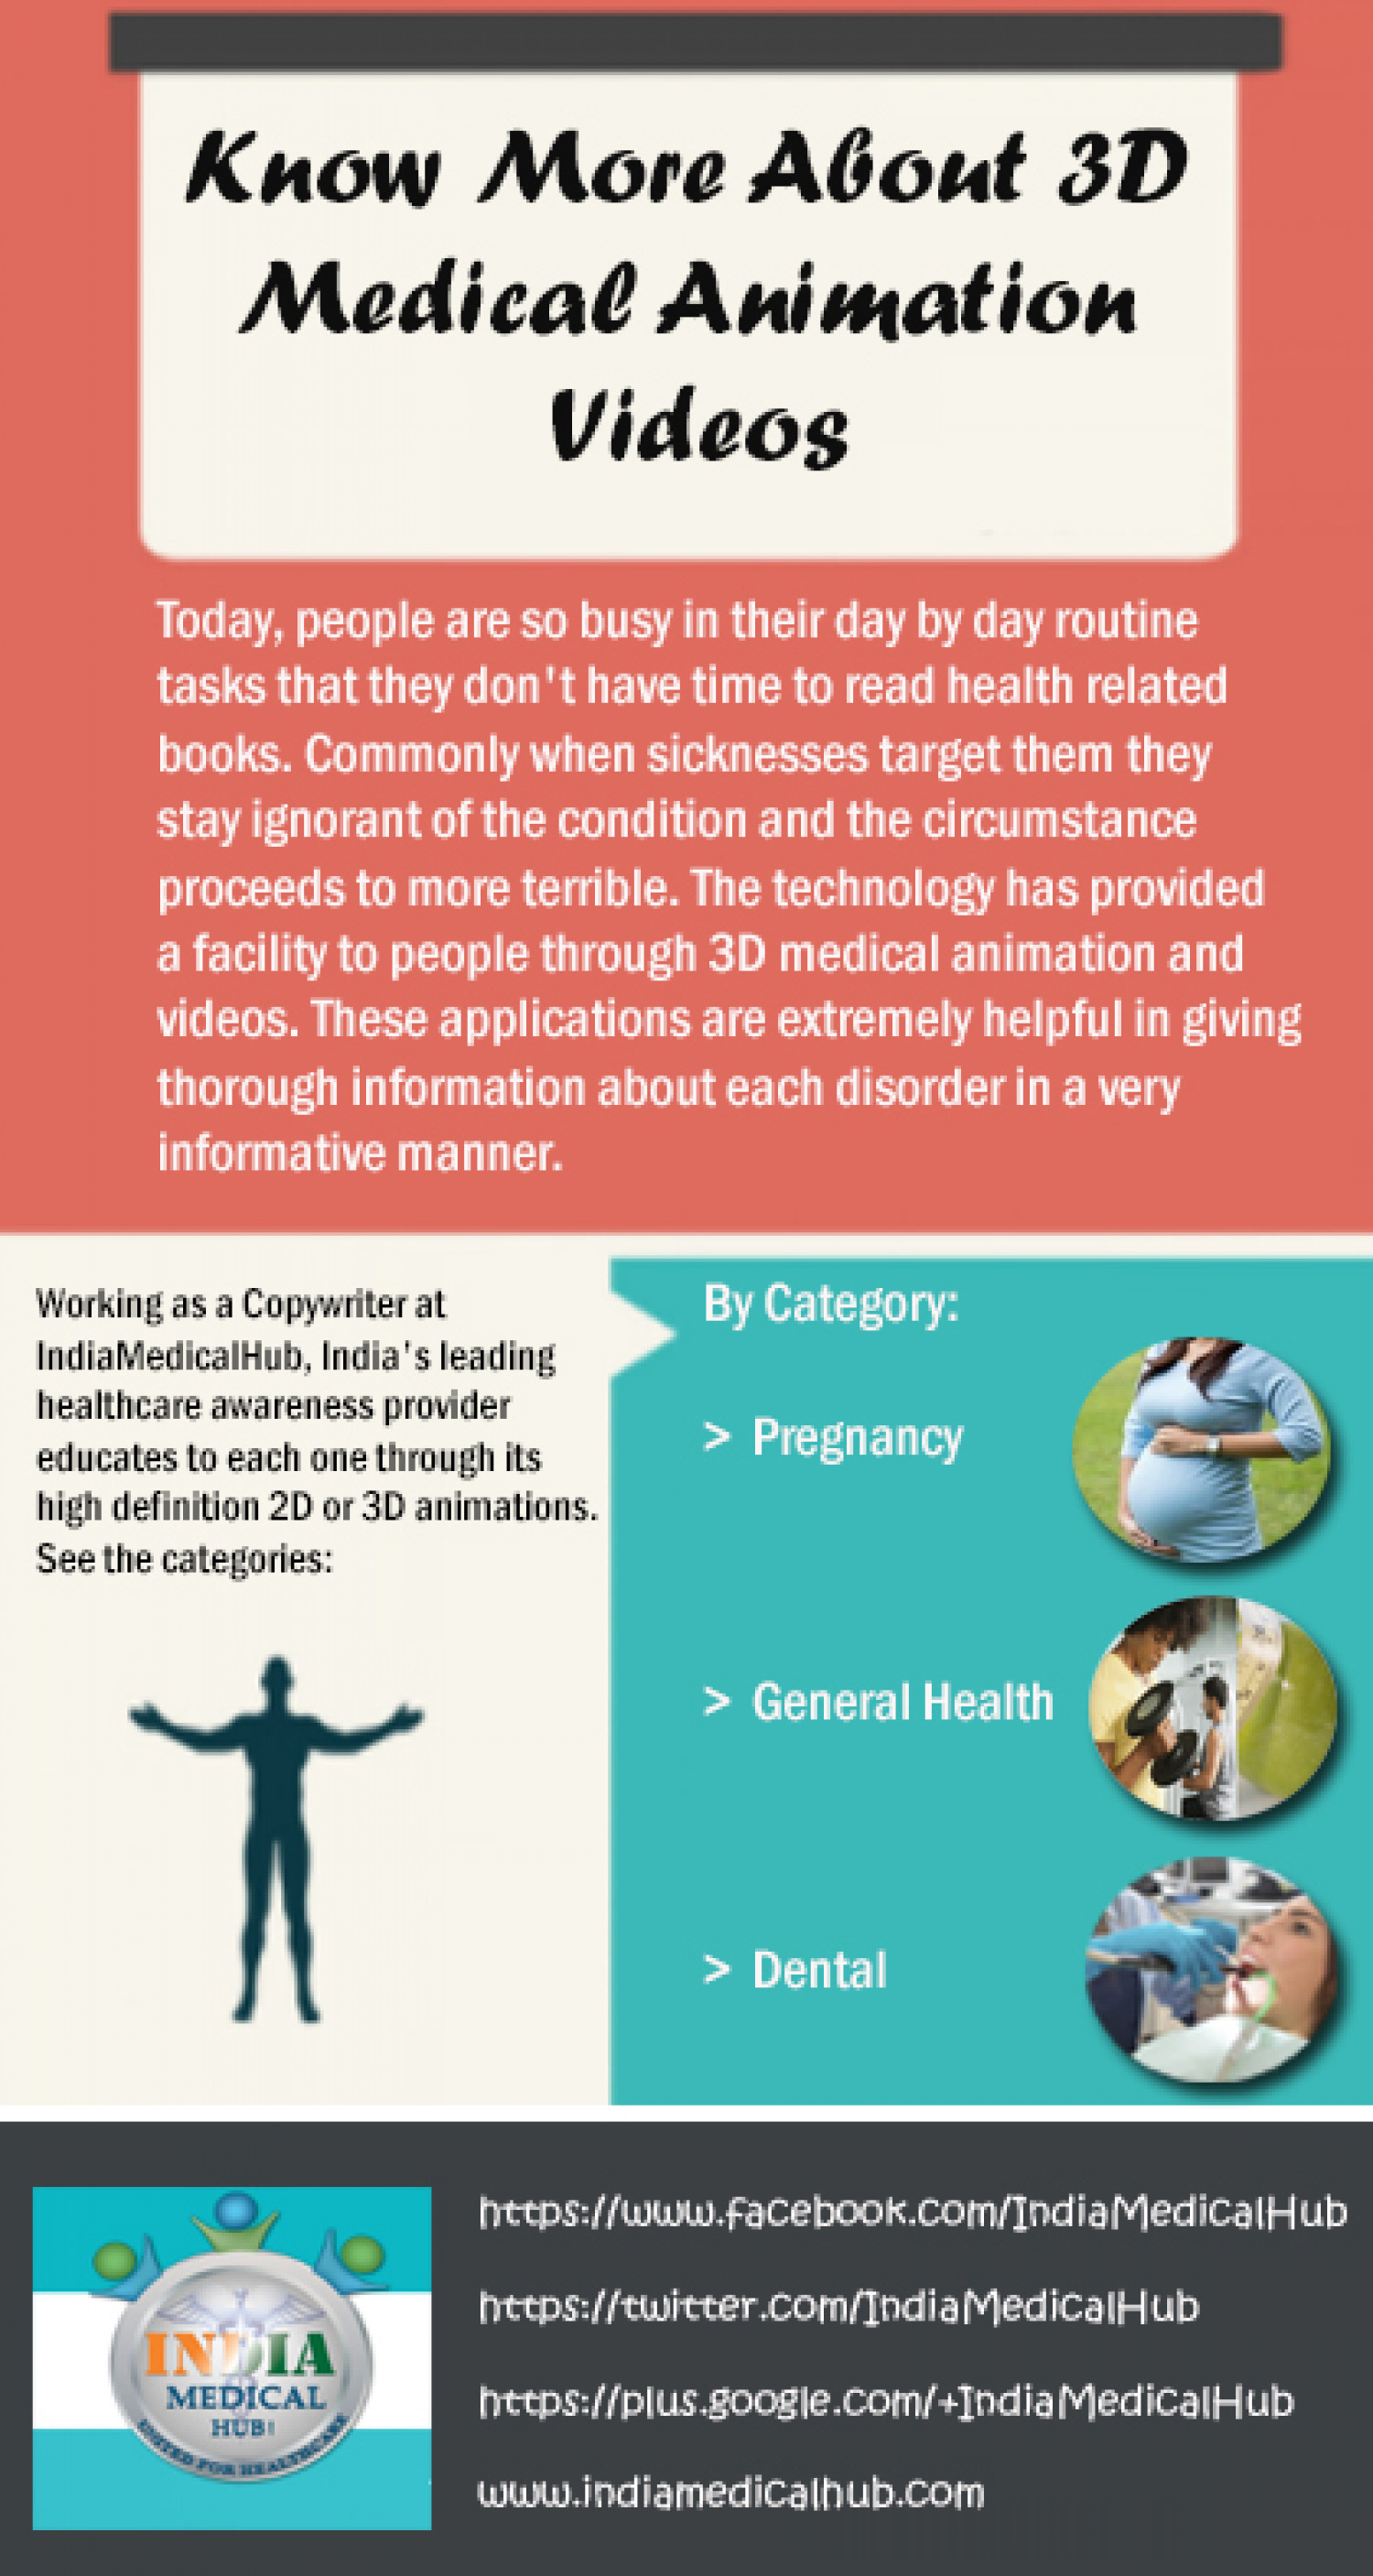 Know More About 3D Medical Animation Videos Infographic